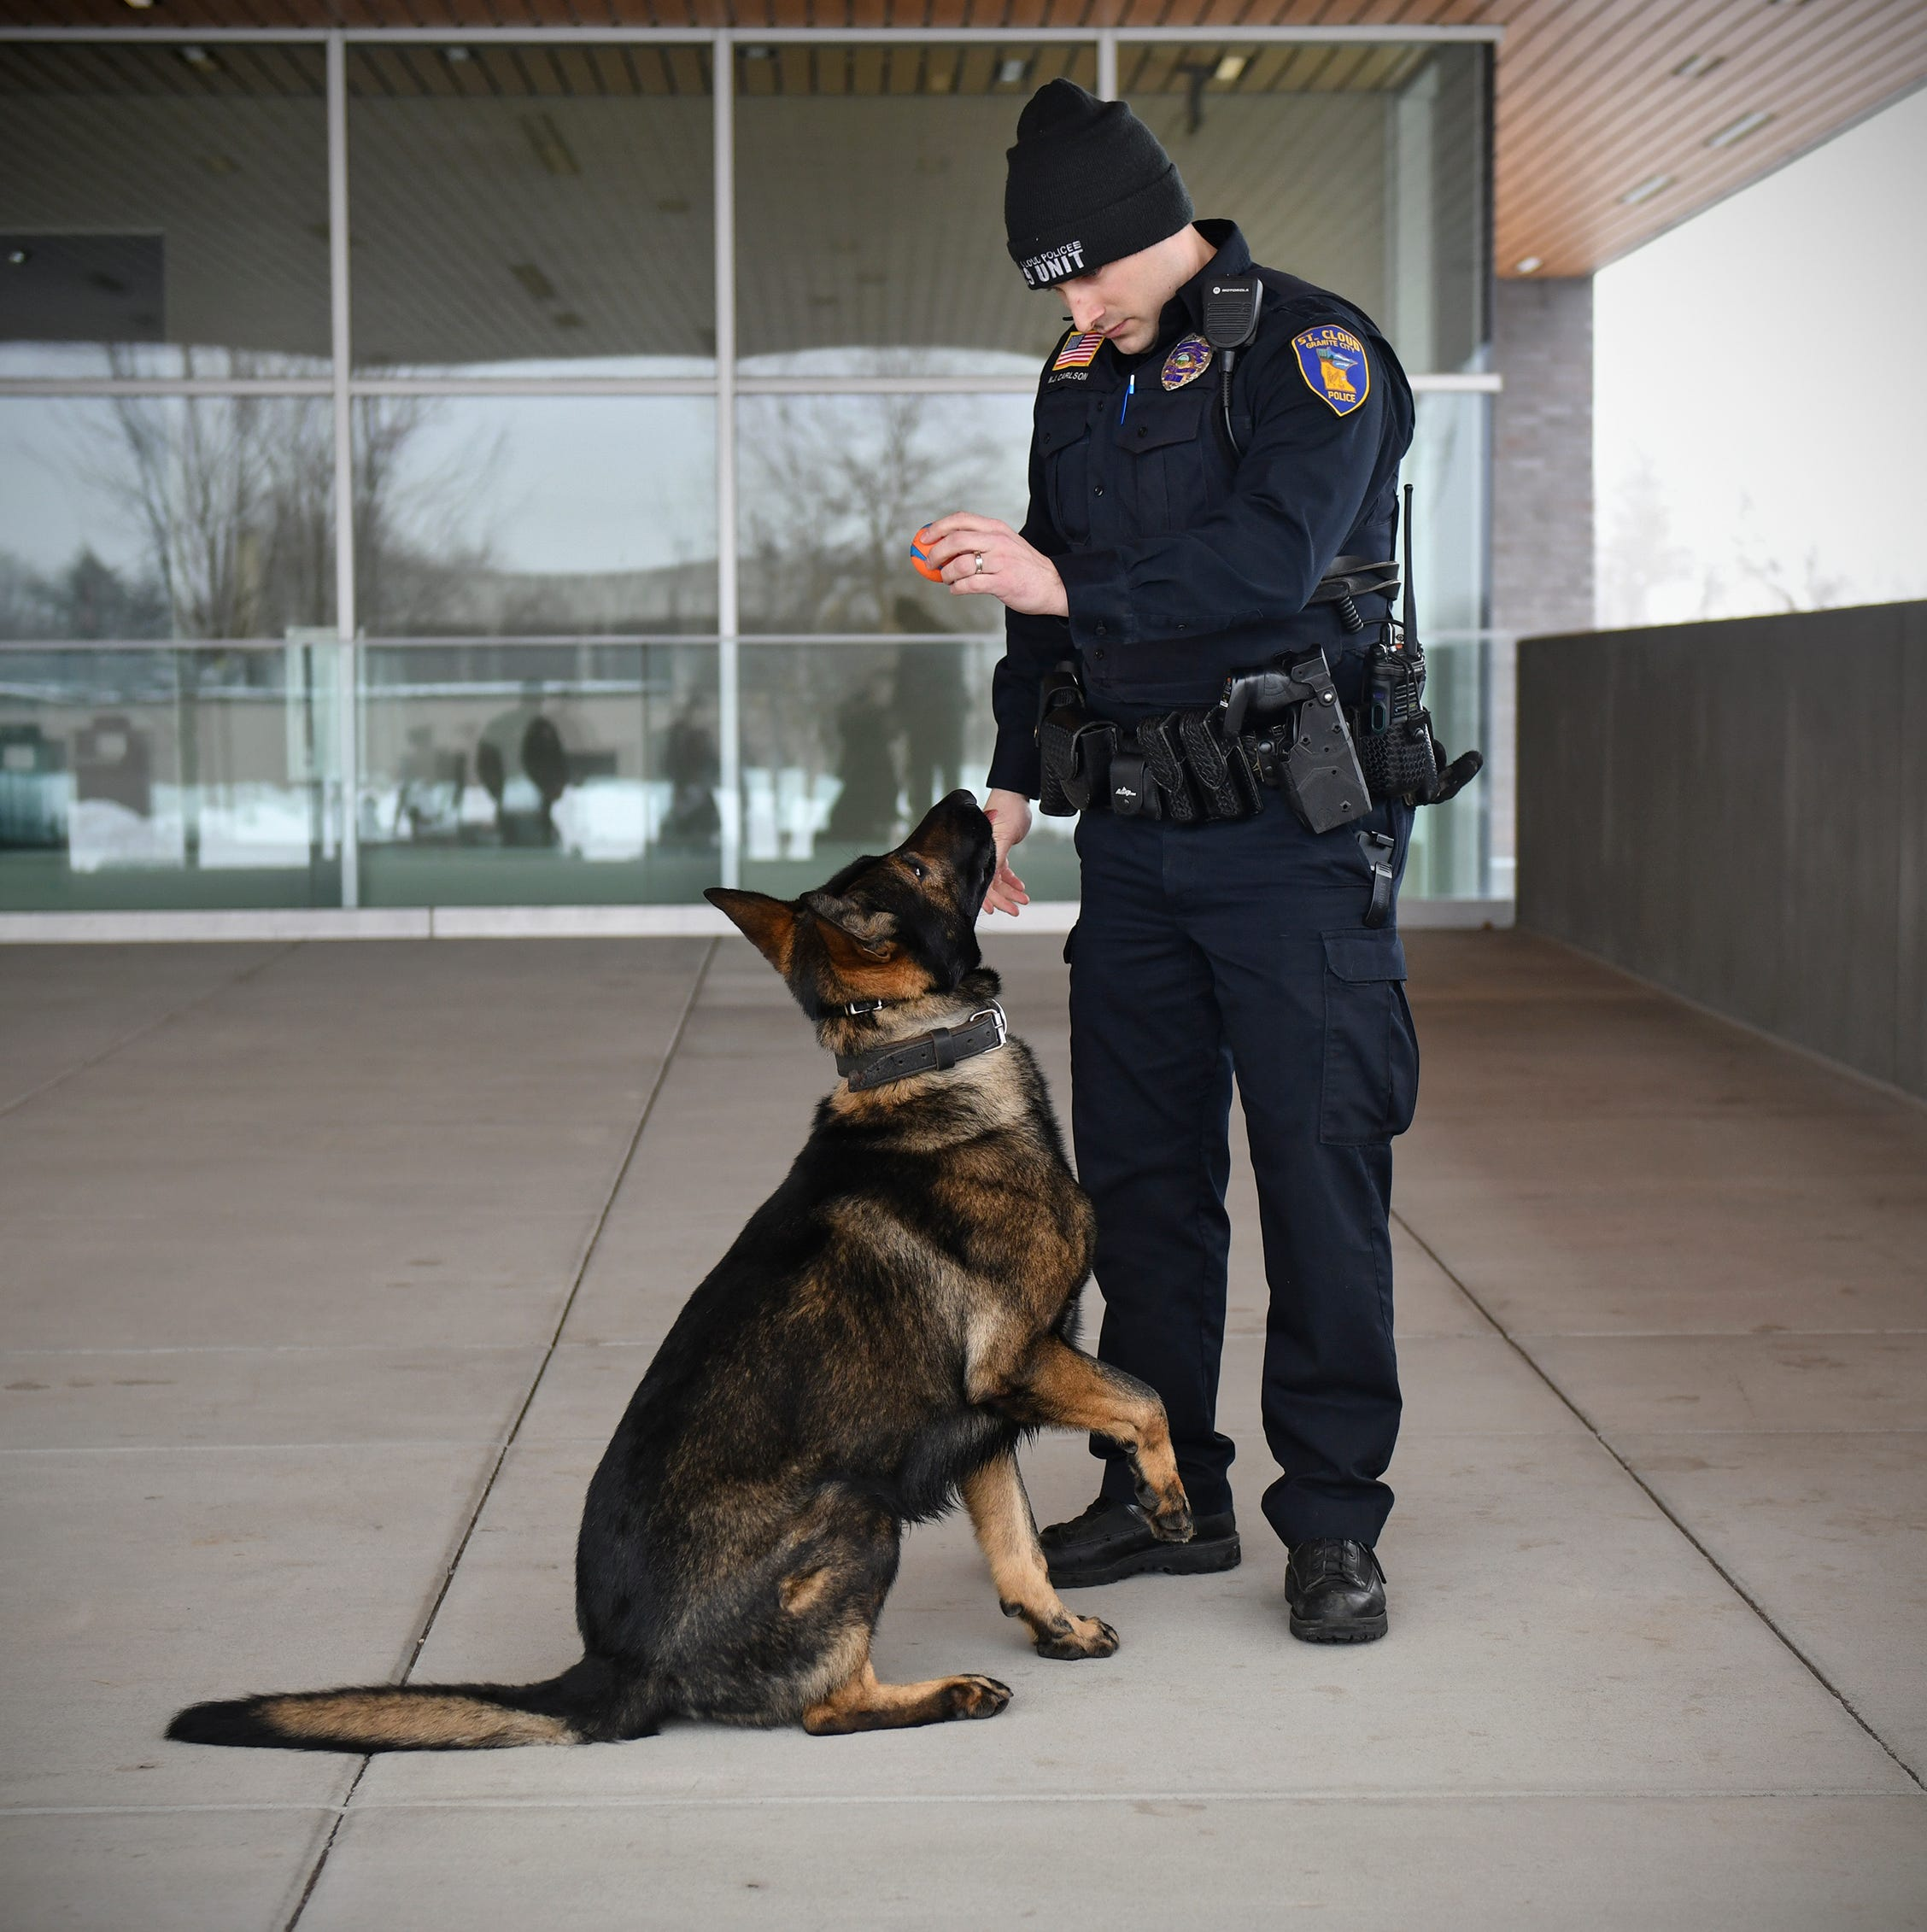 St. Cloud police K-9 Riggs is ready to detect explosives after 8 weeks of training